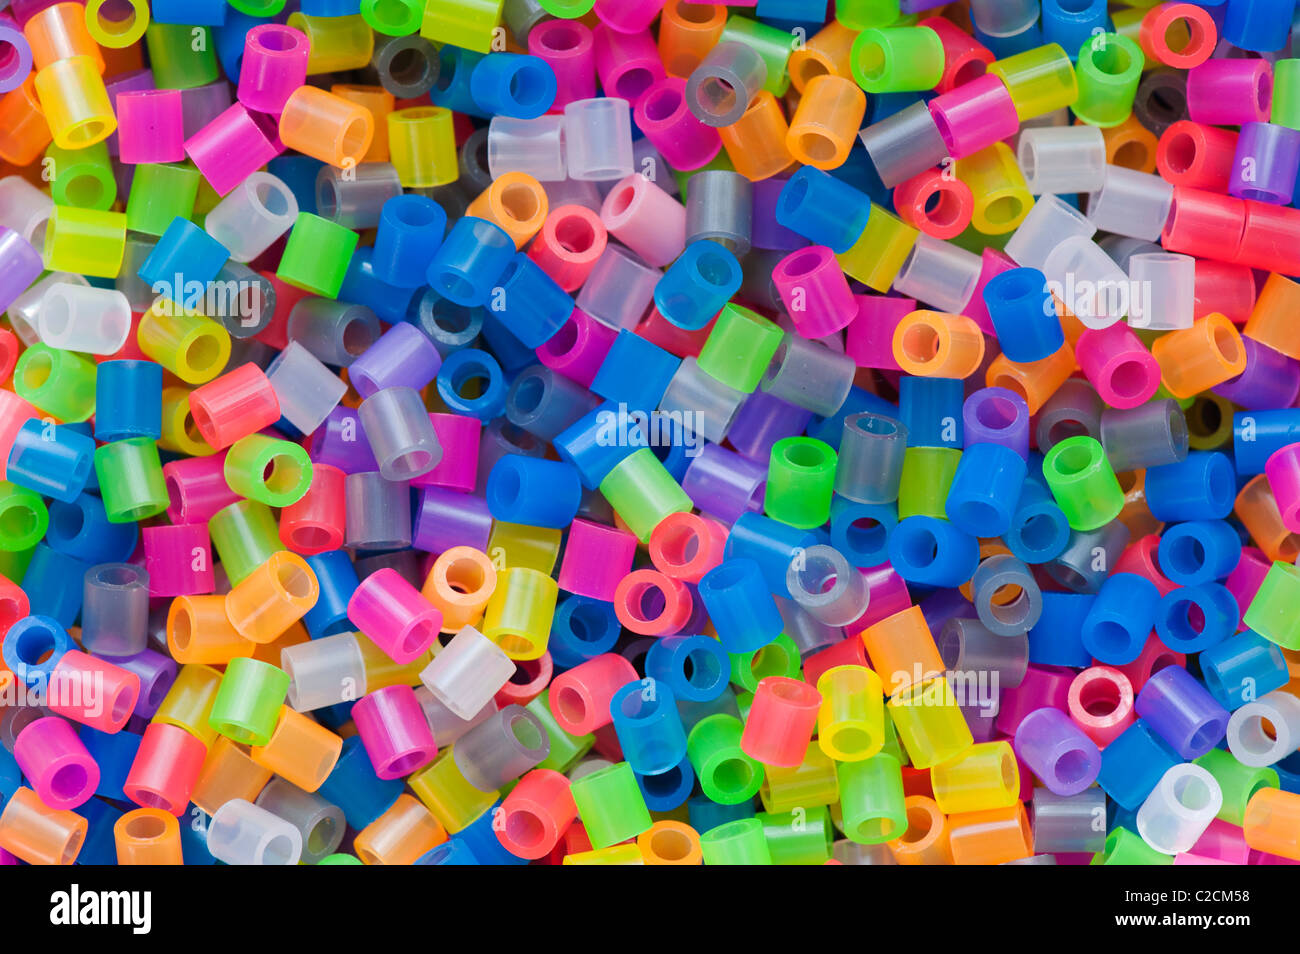 Multicoloured replica Hama plastic beads - Stock Image